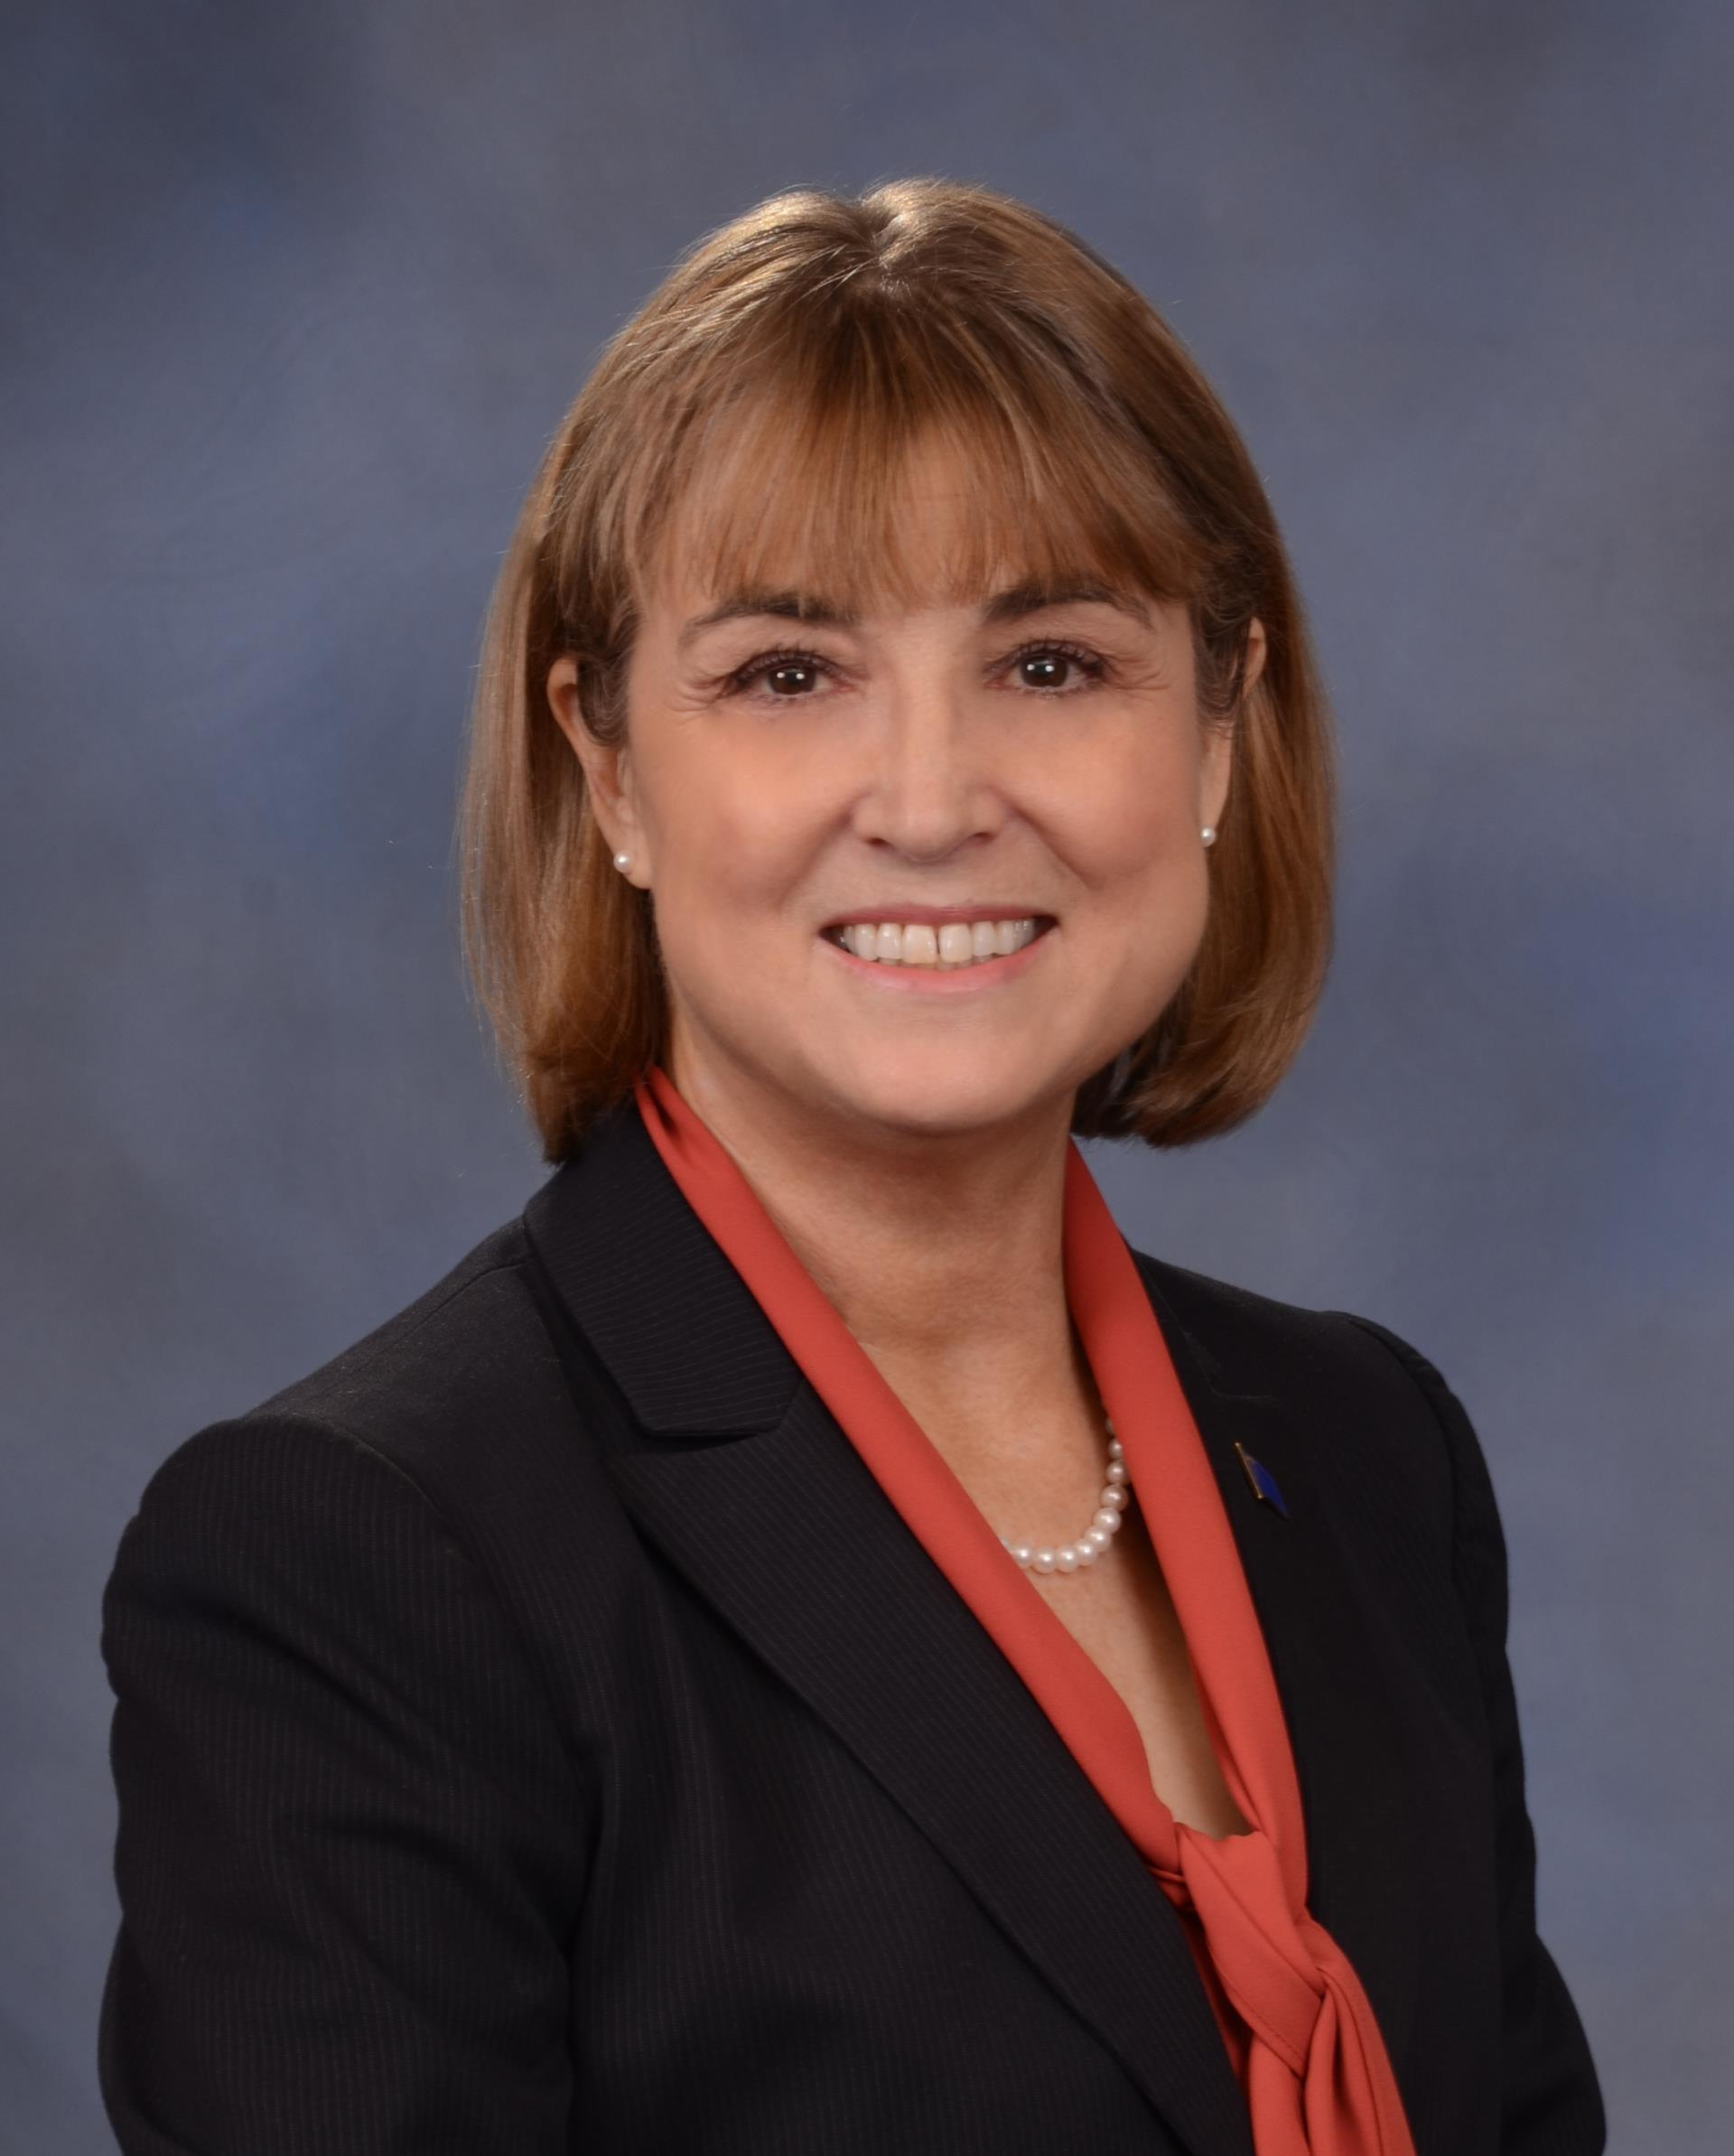 A portrait of Nevada Lieutenant Governor Kate Marshall